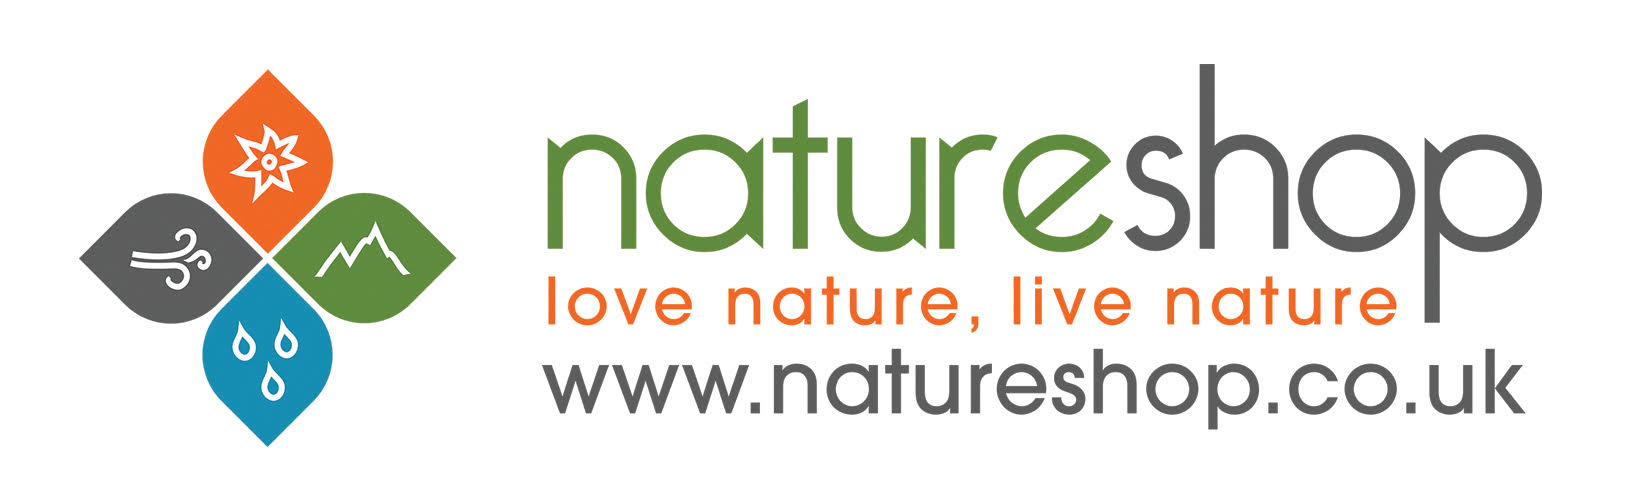 Natureshop